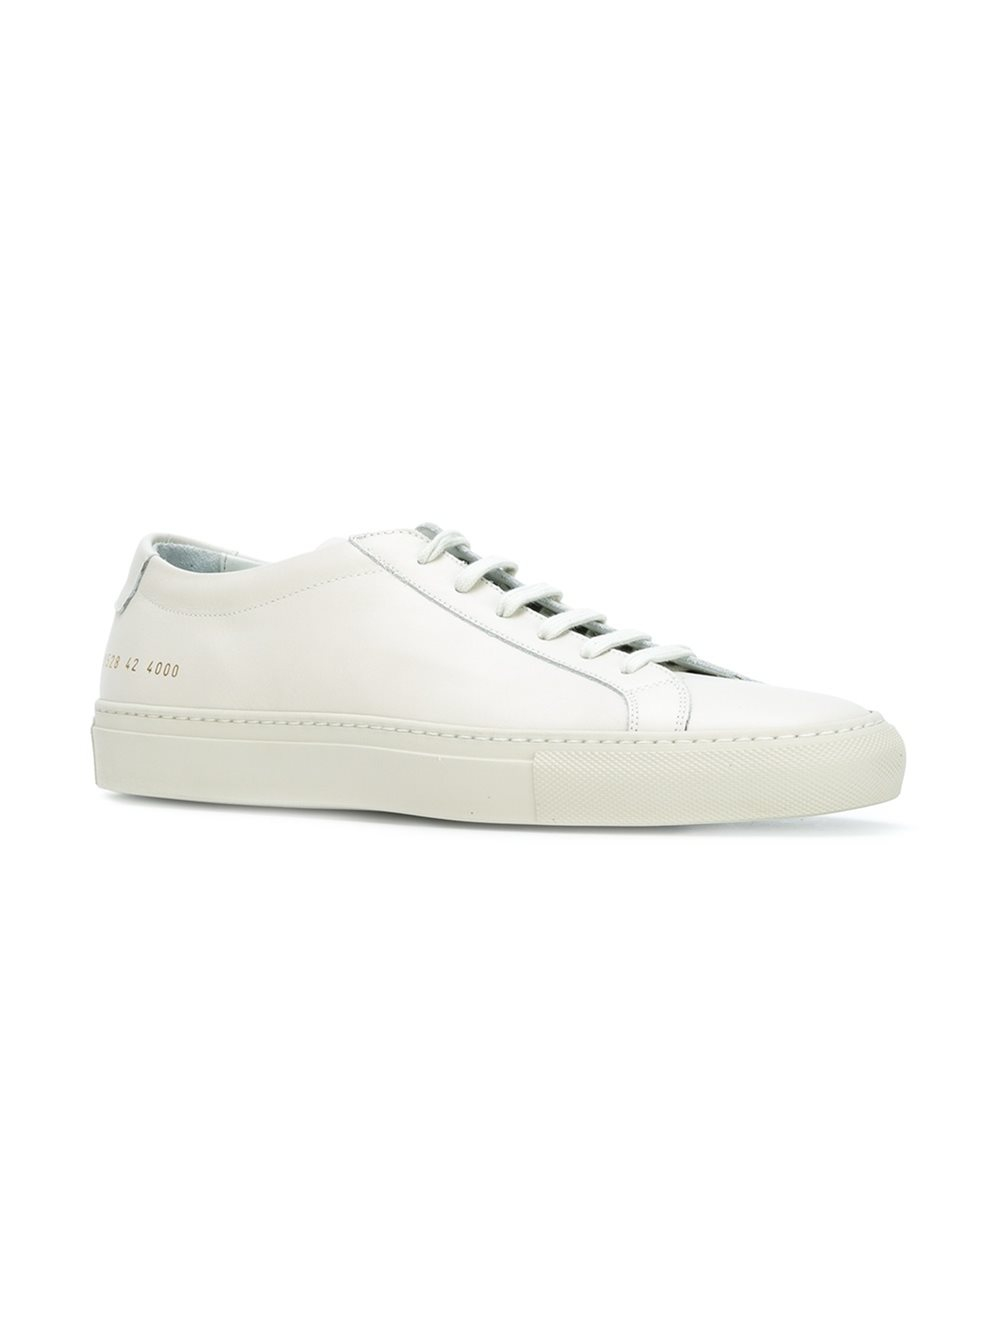 common projects lace up sneakers men leather rubber 41 in white for men lyst. Black Bedroom Furniture Sets. Home Design Ideas